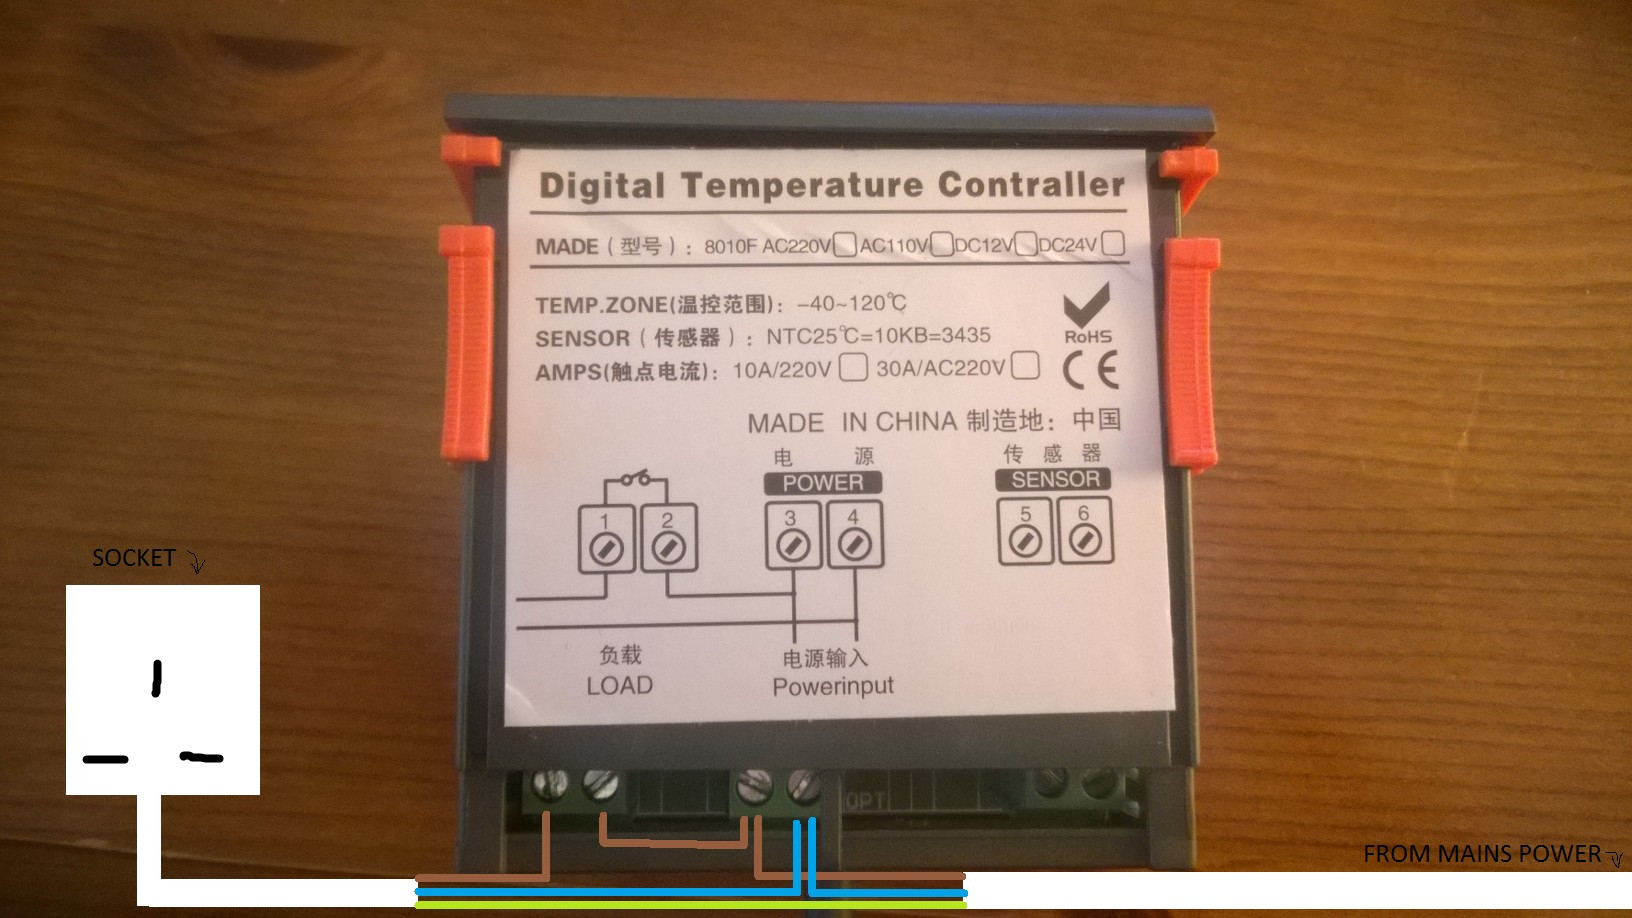 wiring diagram ac razor electric scooter advice on power supply to digital temperature controller - electrical engineering stack ...